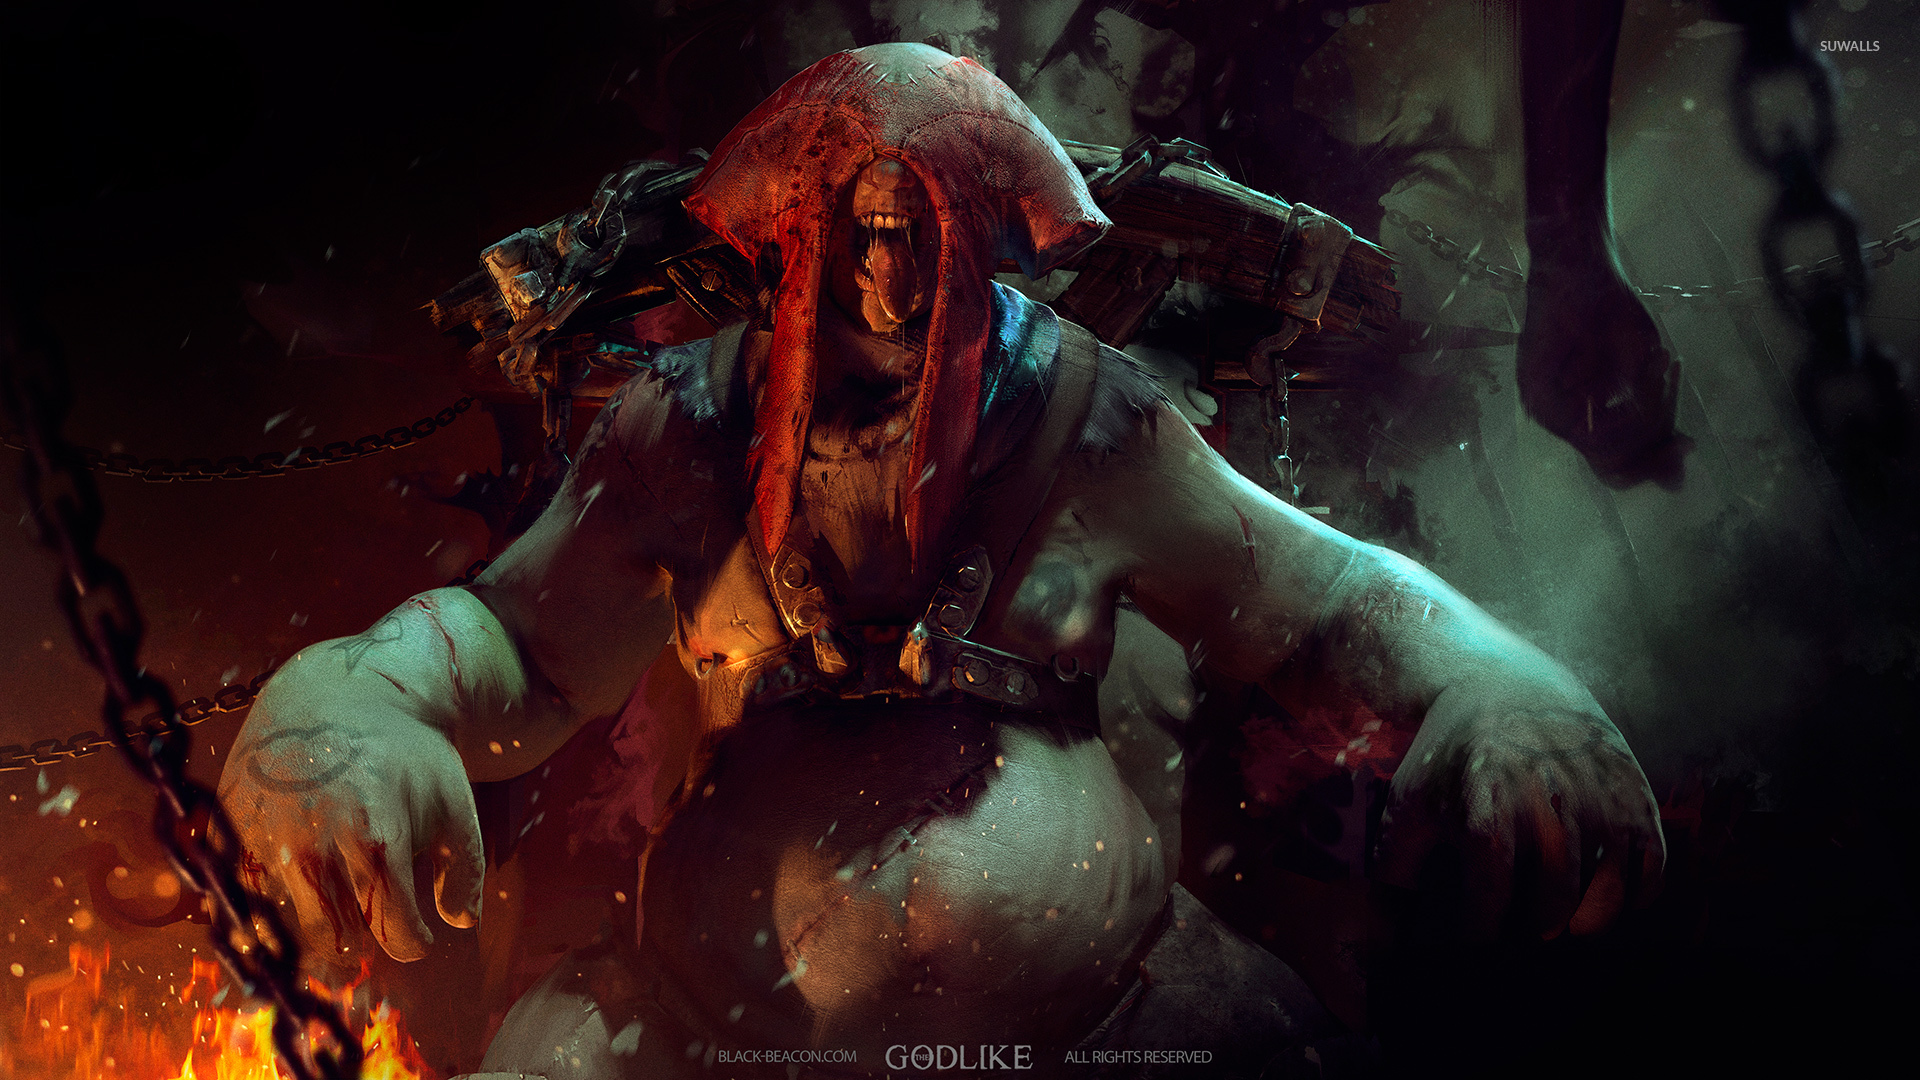 Anime Girl Epic Wallpapers Monster In The Godlike Wallpaper Game Wallpapers 51426